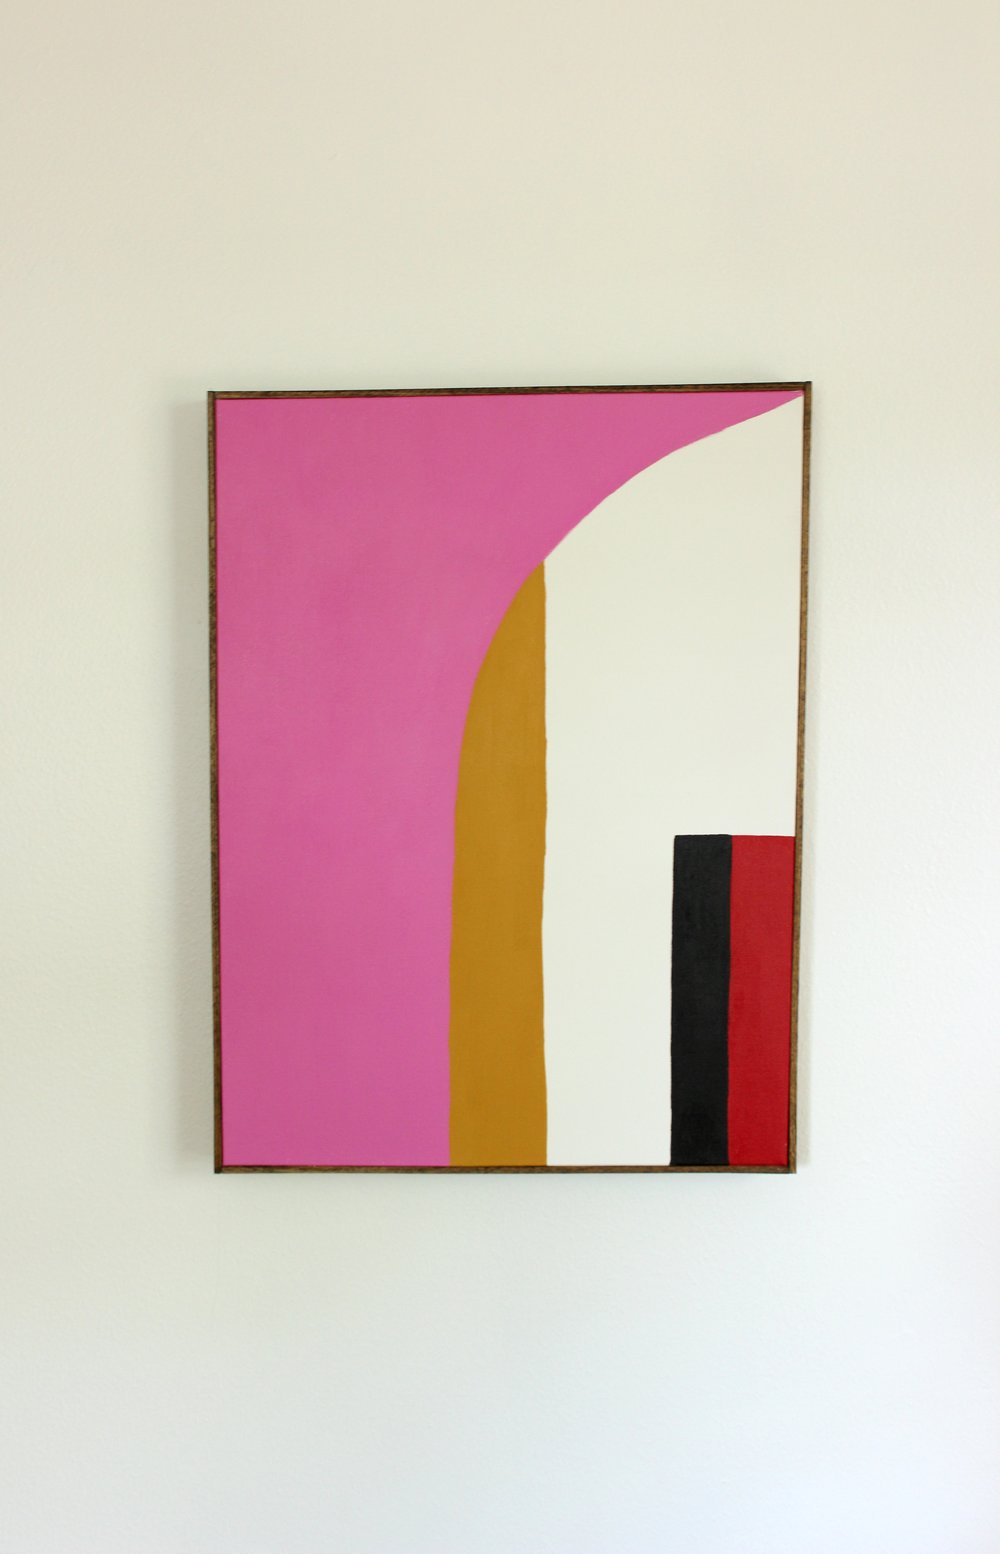 Untitled, 24 x 18 inches, acrylic on canvas, framed, $550